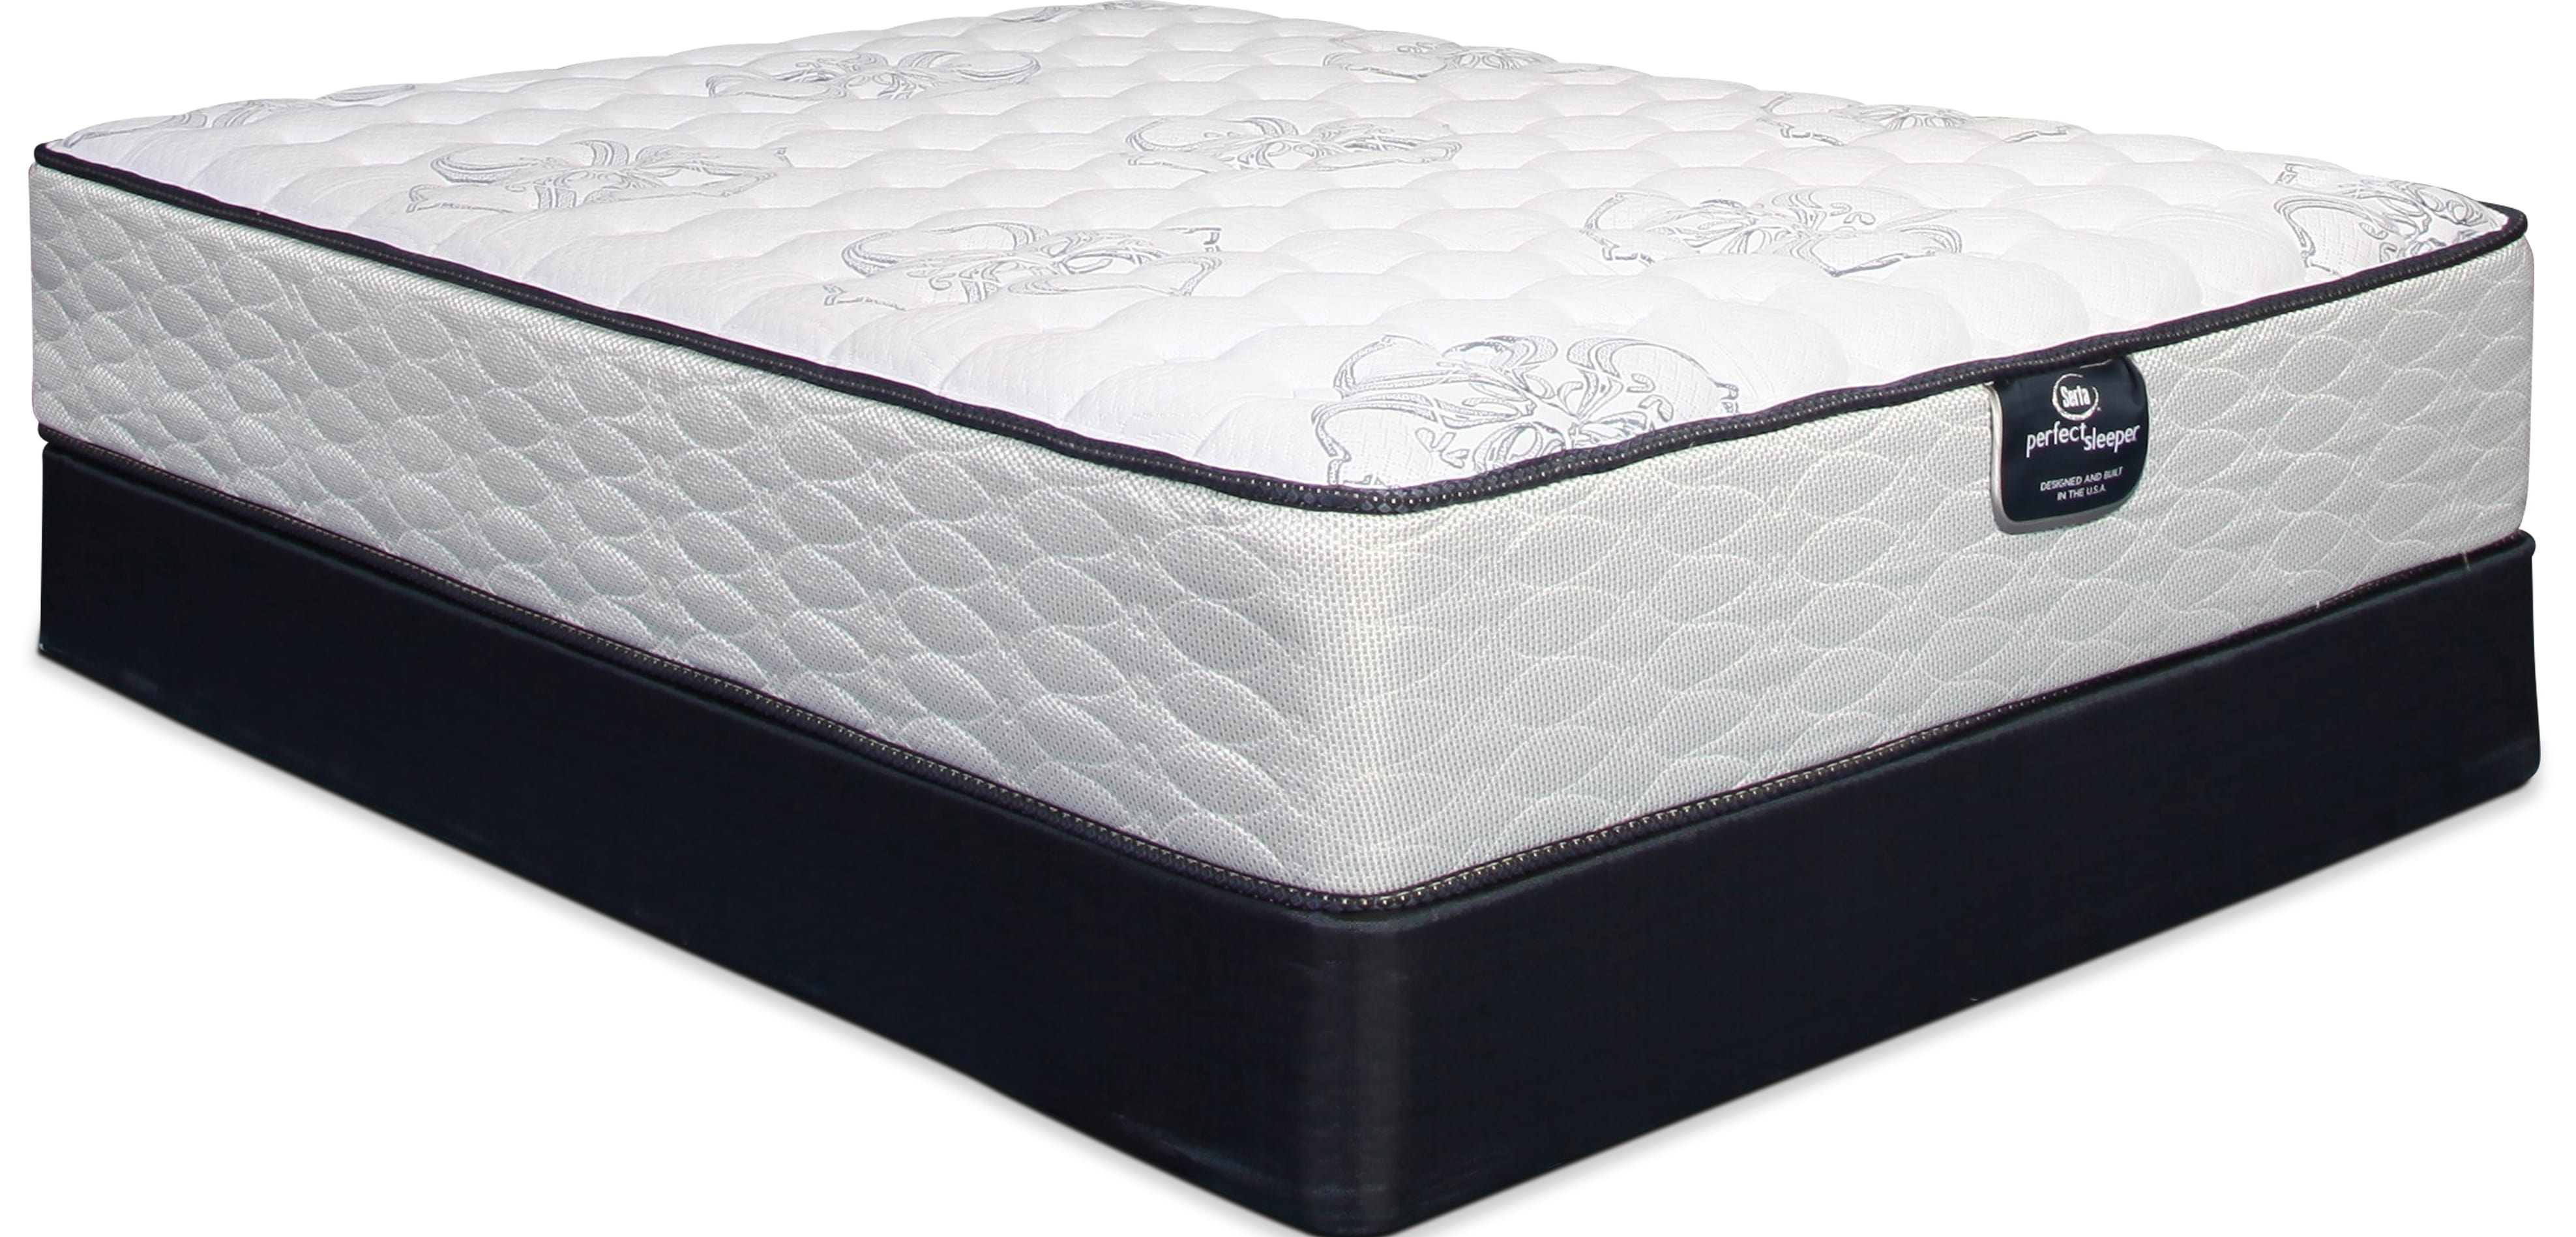 Serta Perfect Sleeper Ultra Firm Twin Mattress and Boxspring